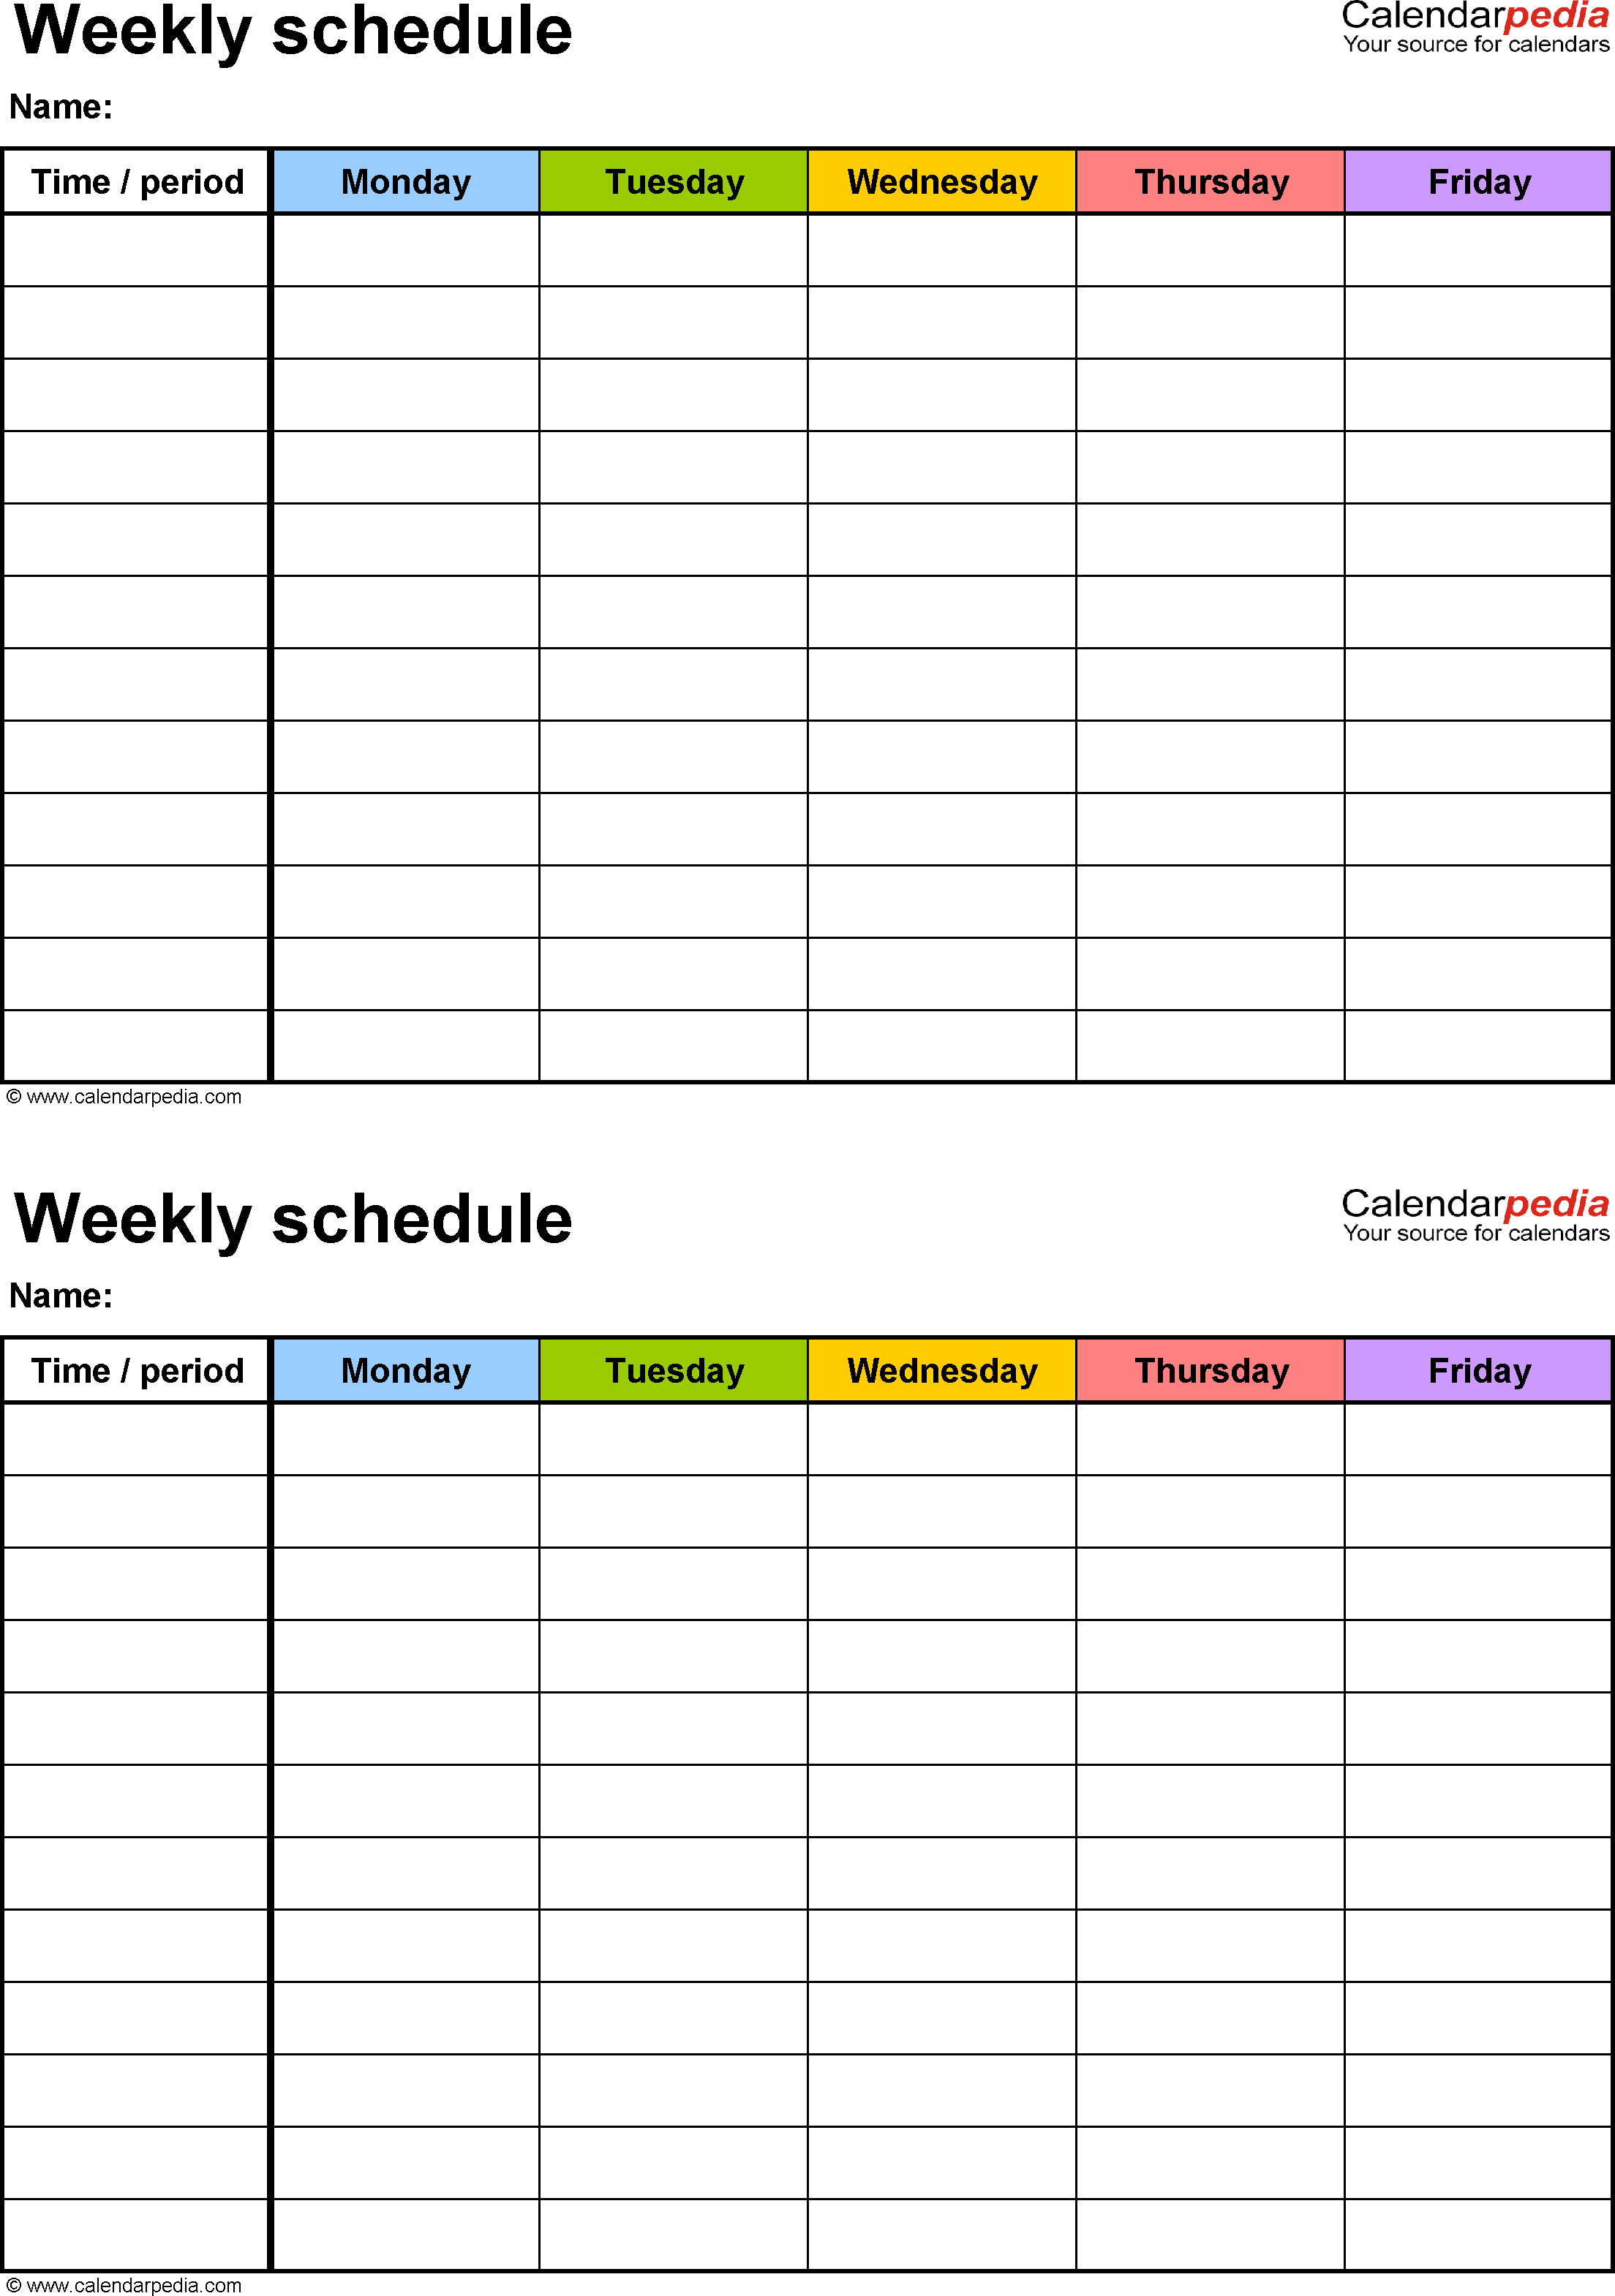 Editable Daily Schedule Template Large Blank Spider Plan Holidays inside Large Blank Editable Spider Plan Template